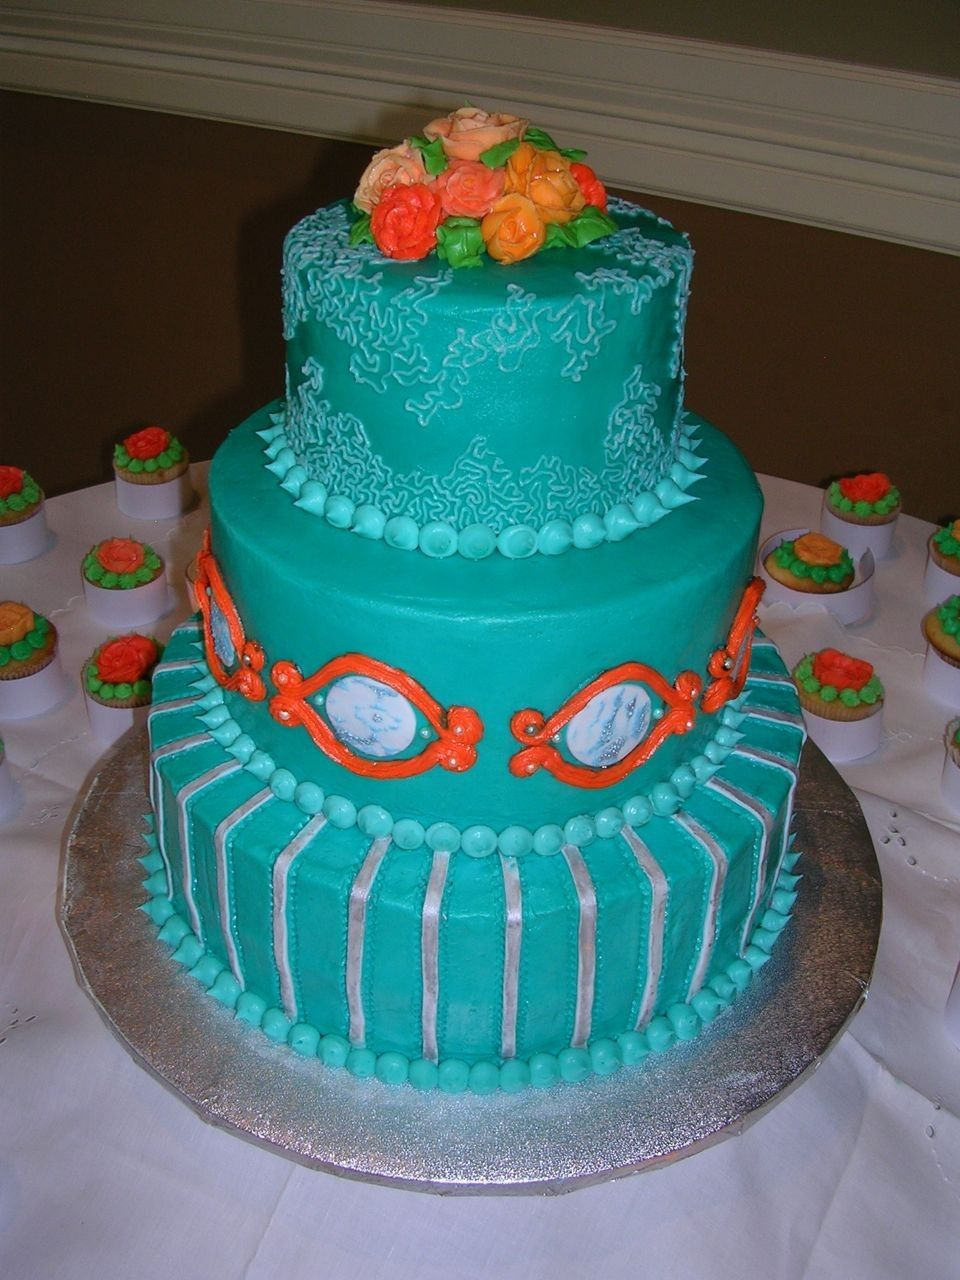 Teal and coral wedding cake artistic wedding purplealso pretty